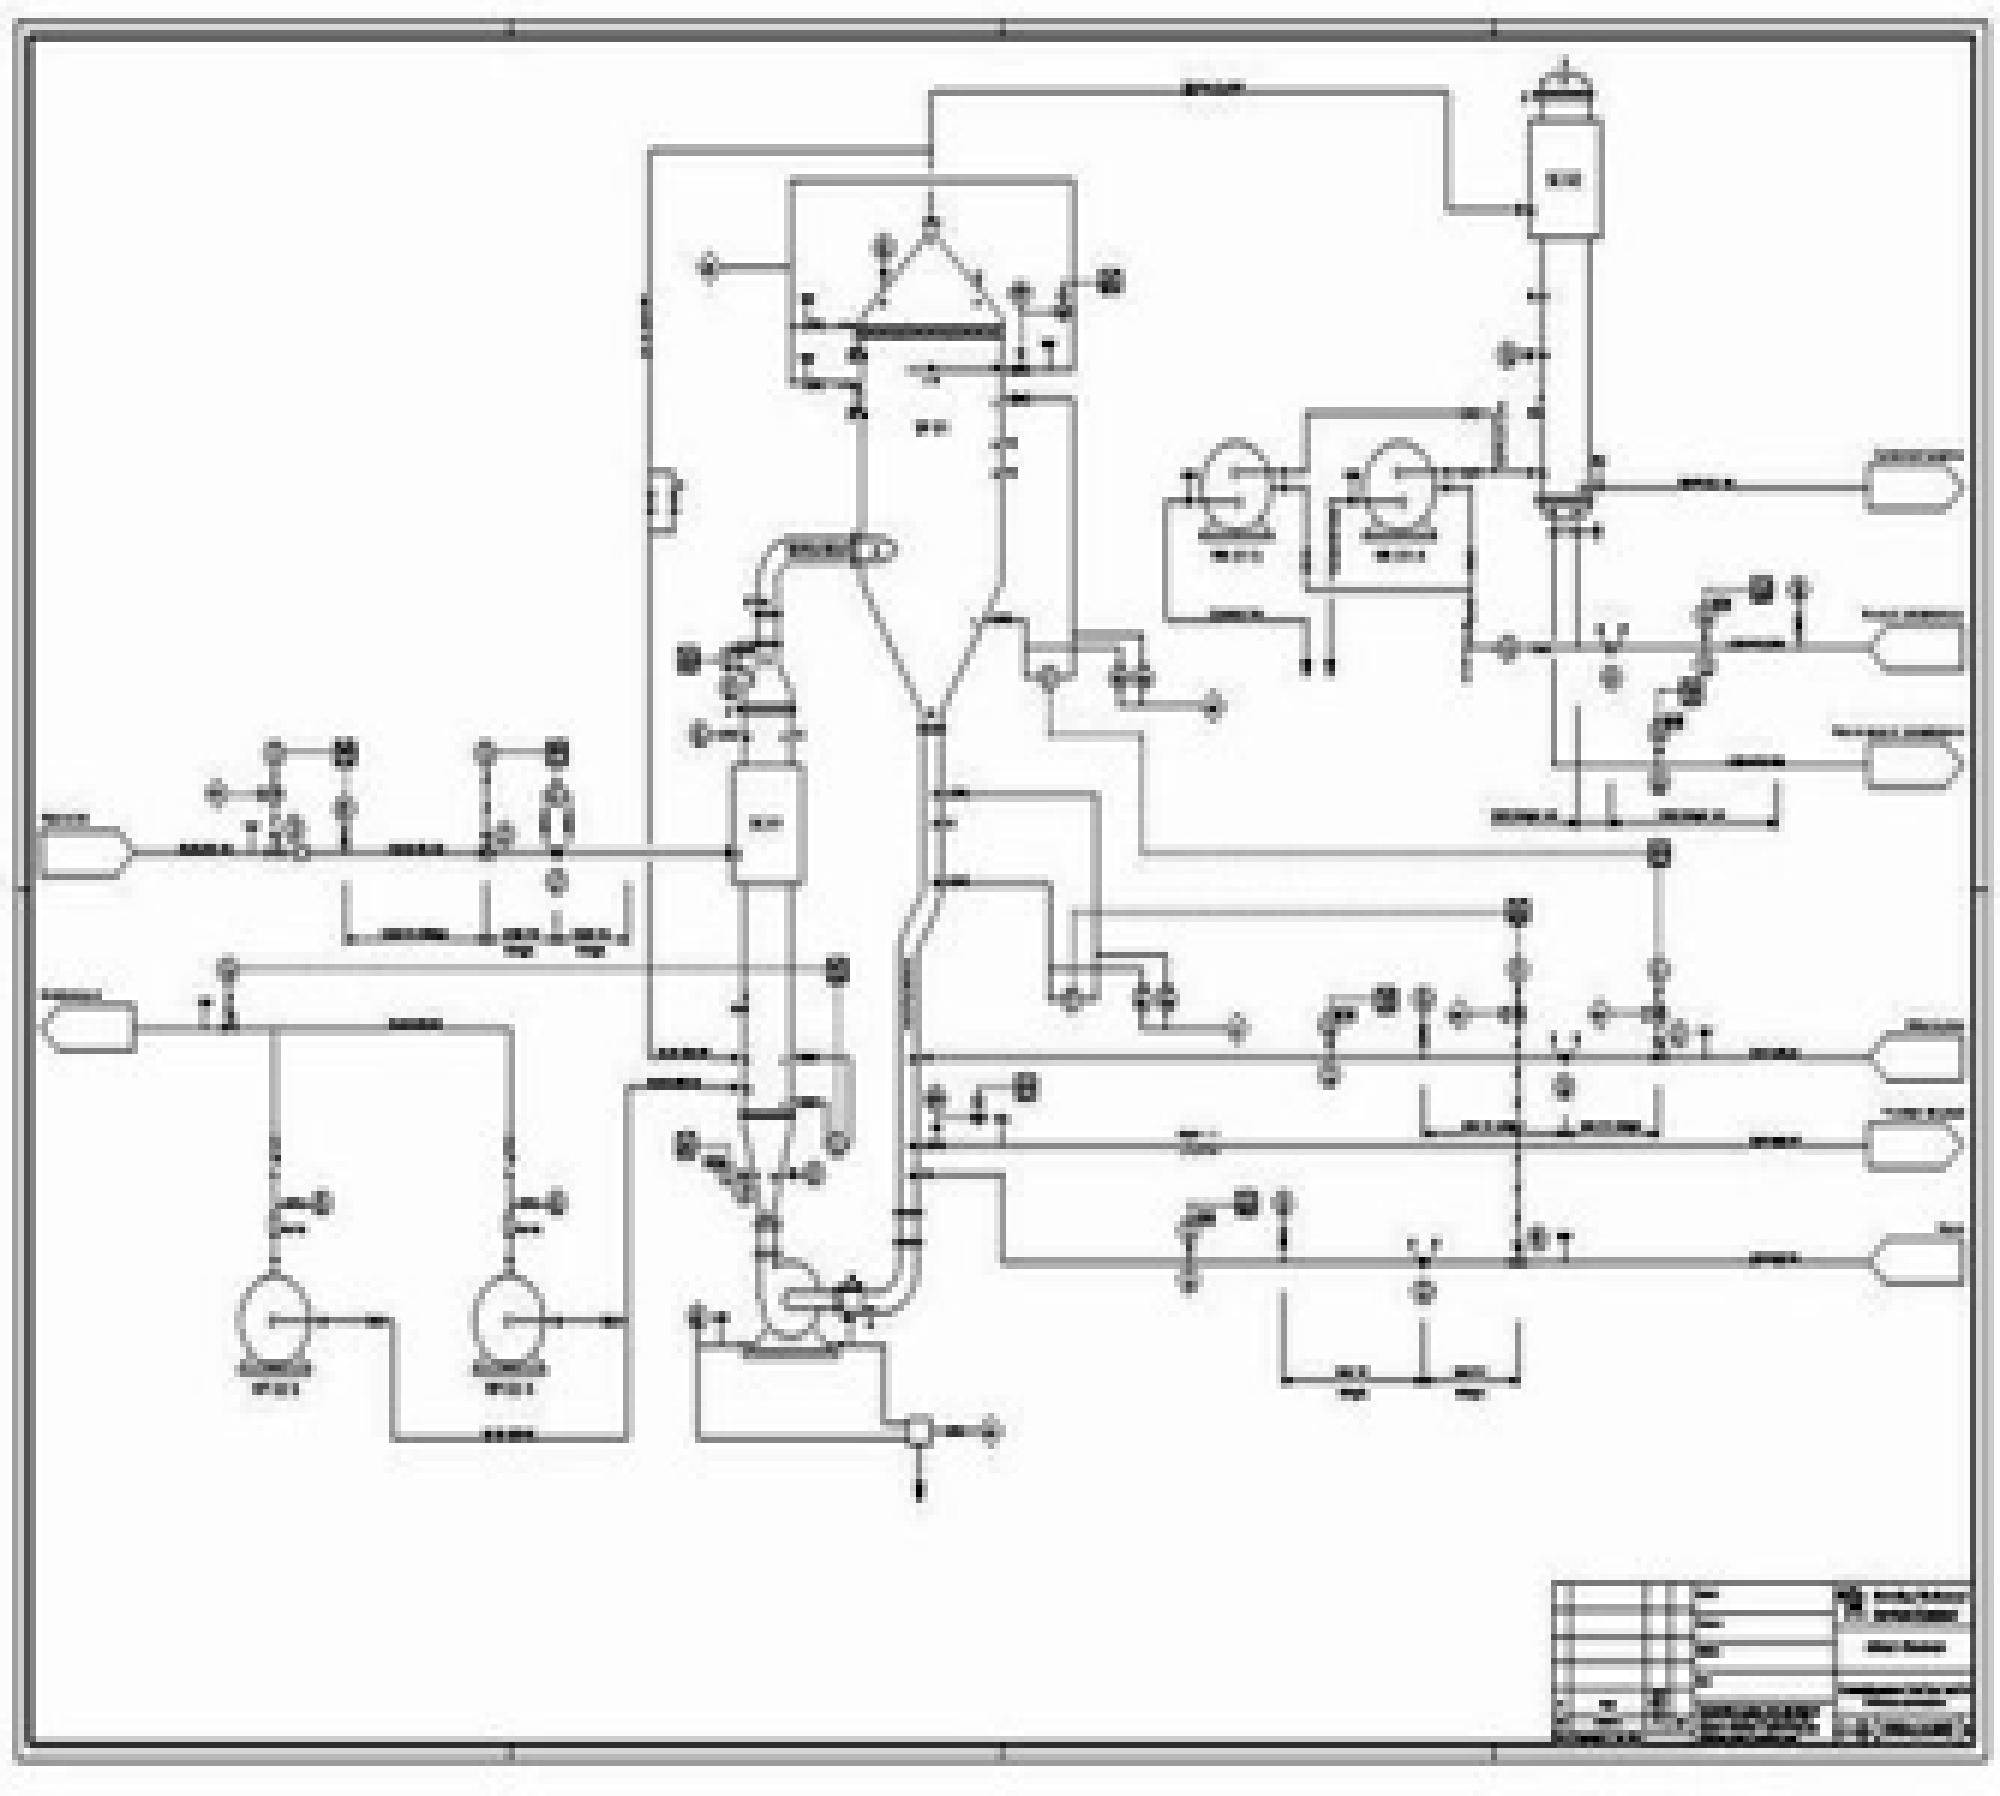 Engineering Design Amp Related Services